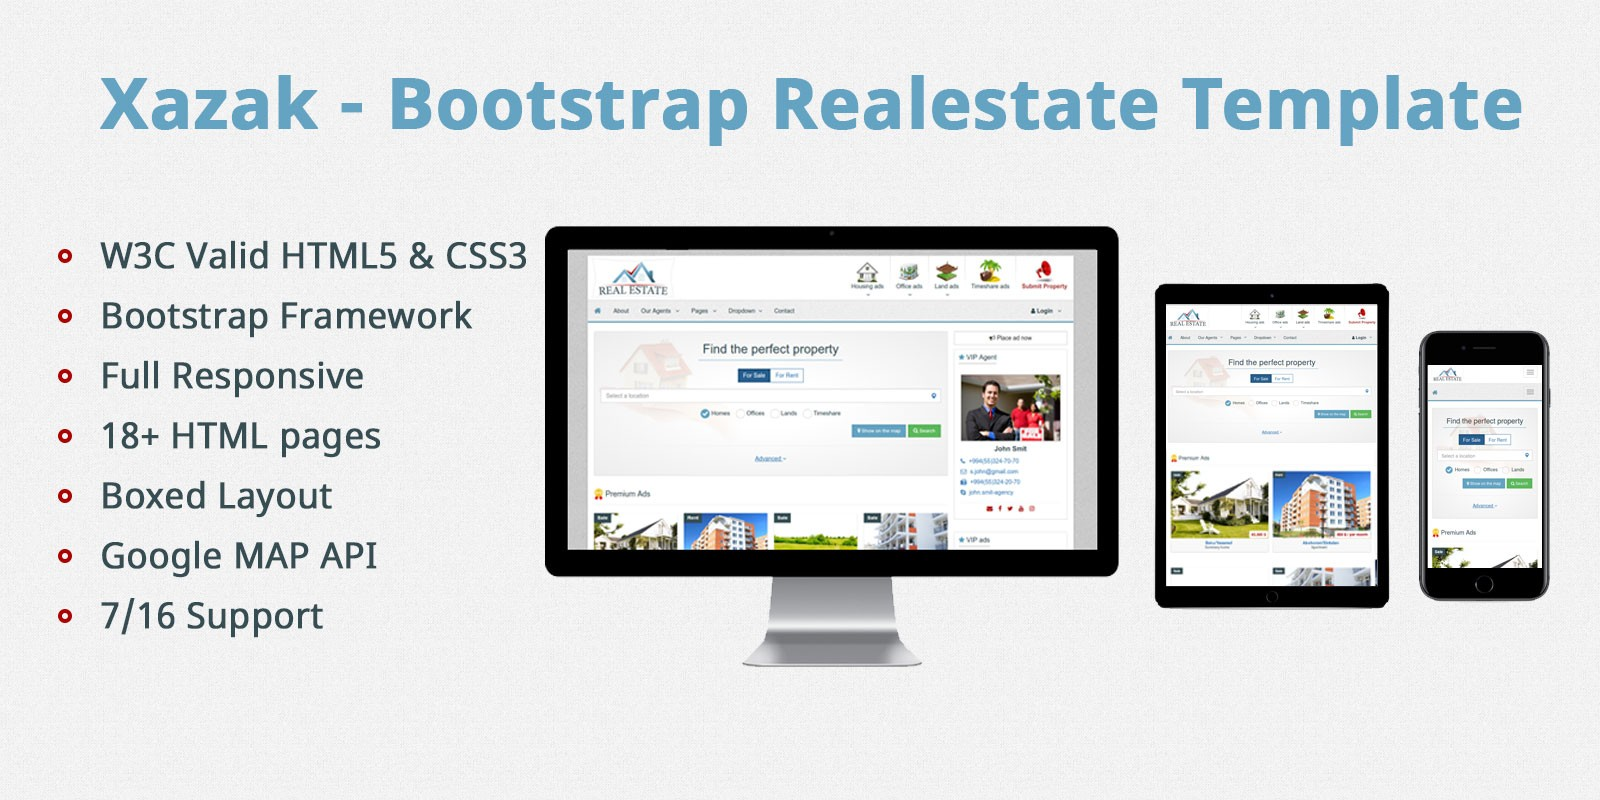 xazak bootstrap real estate template html ecommerce website templates codester. Black Bedroom Furniture Sets. Home Design Ideas